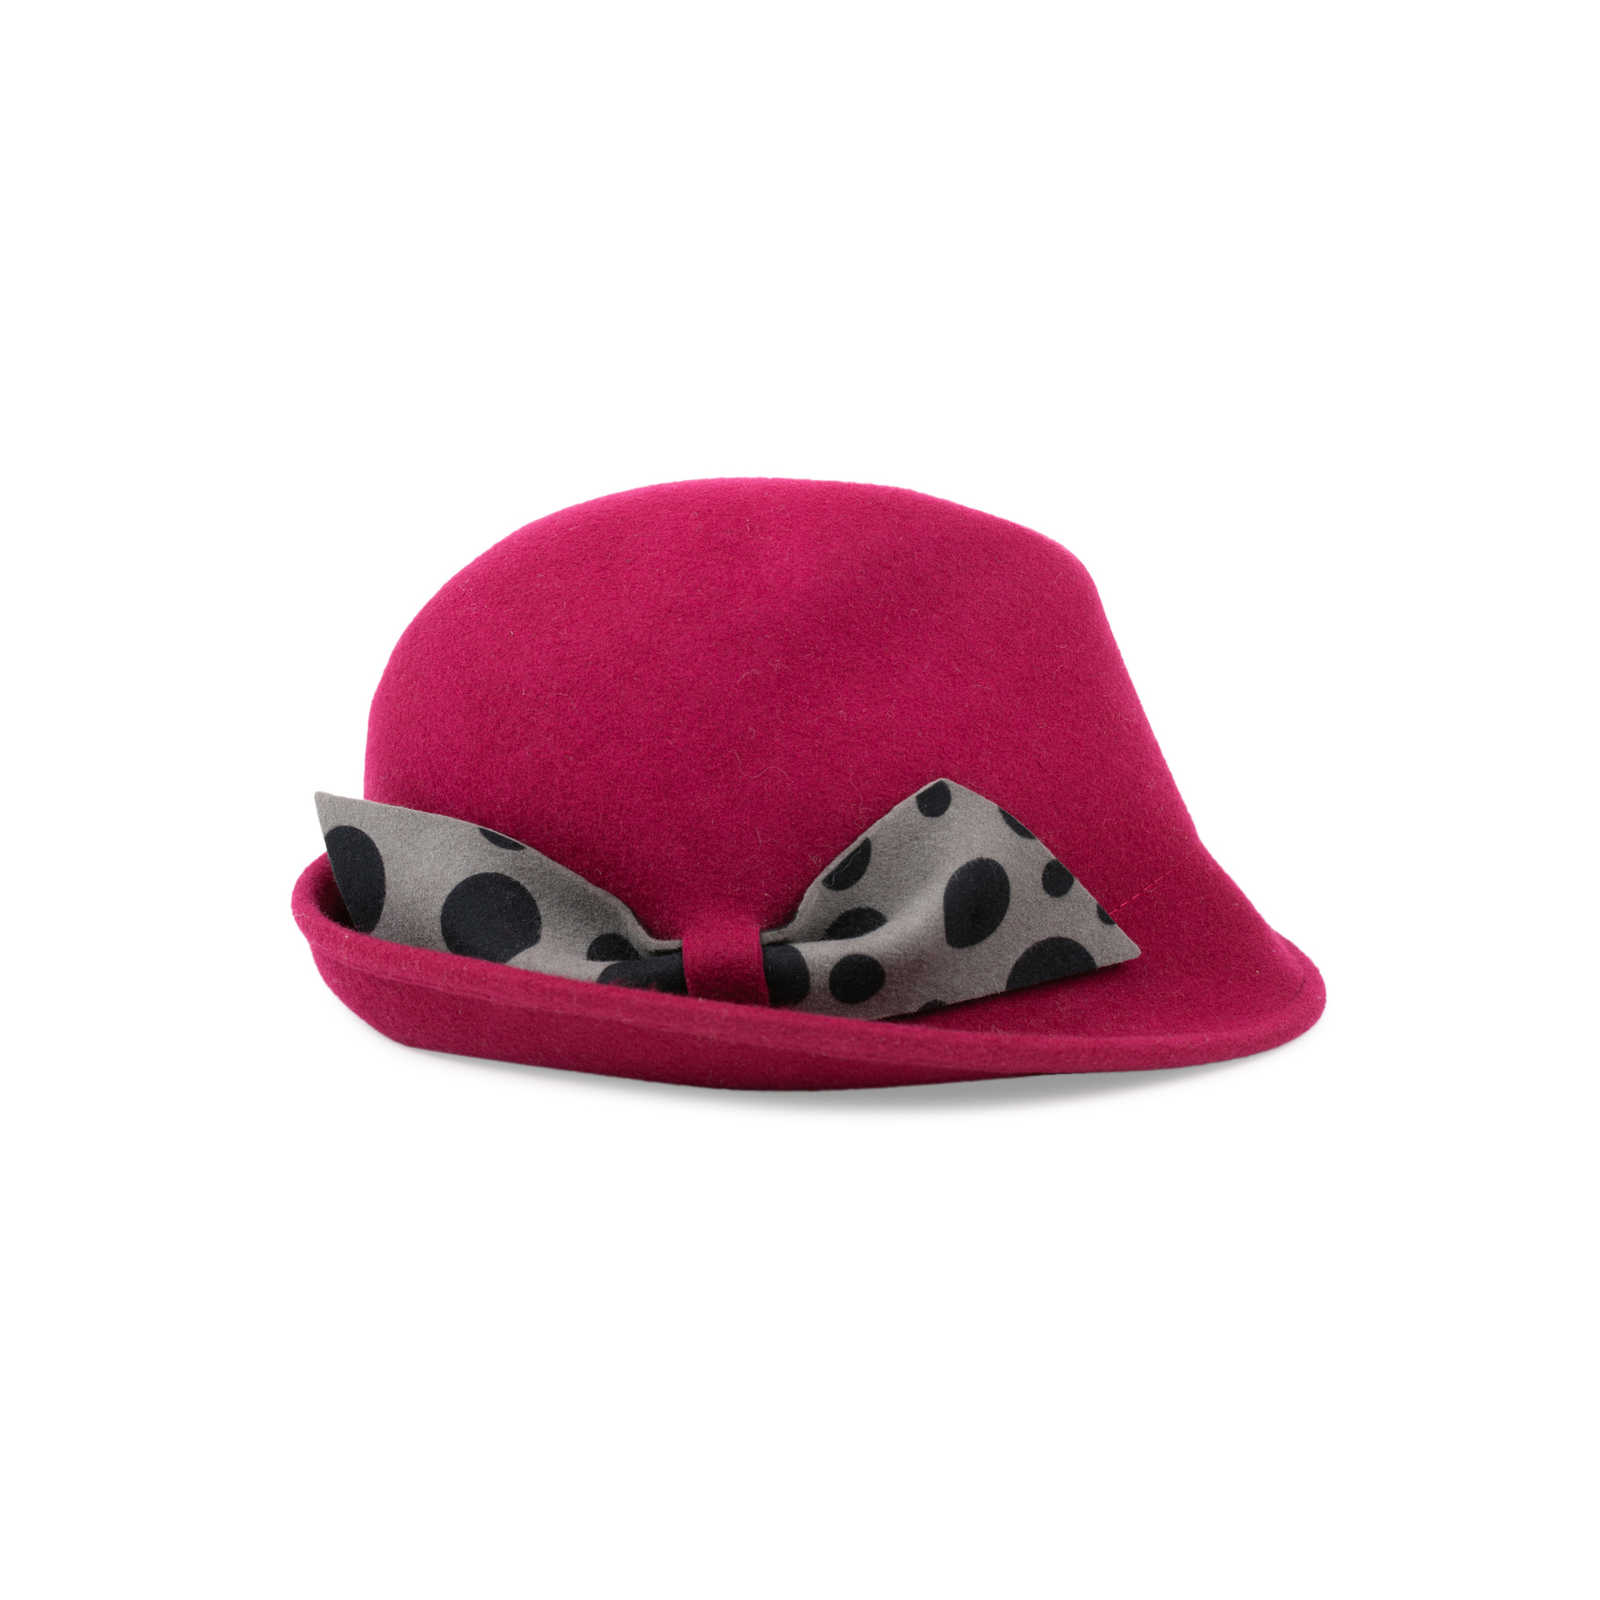 9310b4dbe2c ... Authentic Second Hand Emporio Armani Wool Hat (PSS-515-00088) -  Thumbnail ...